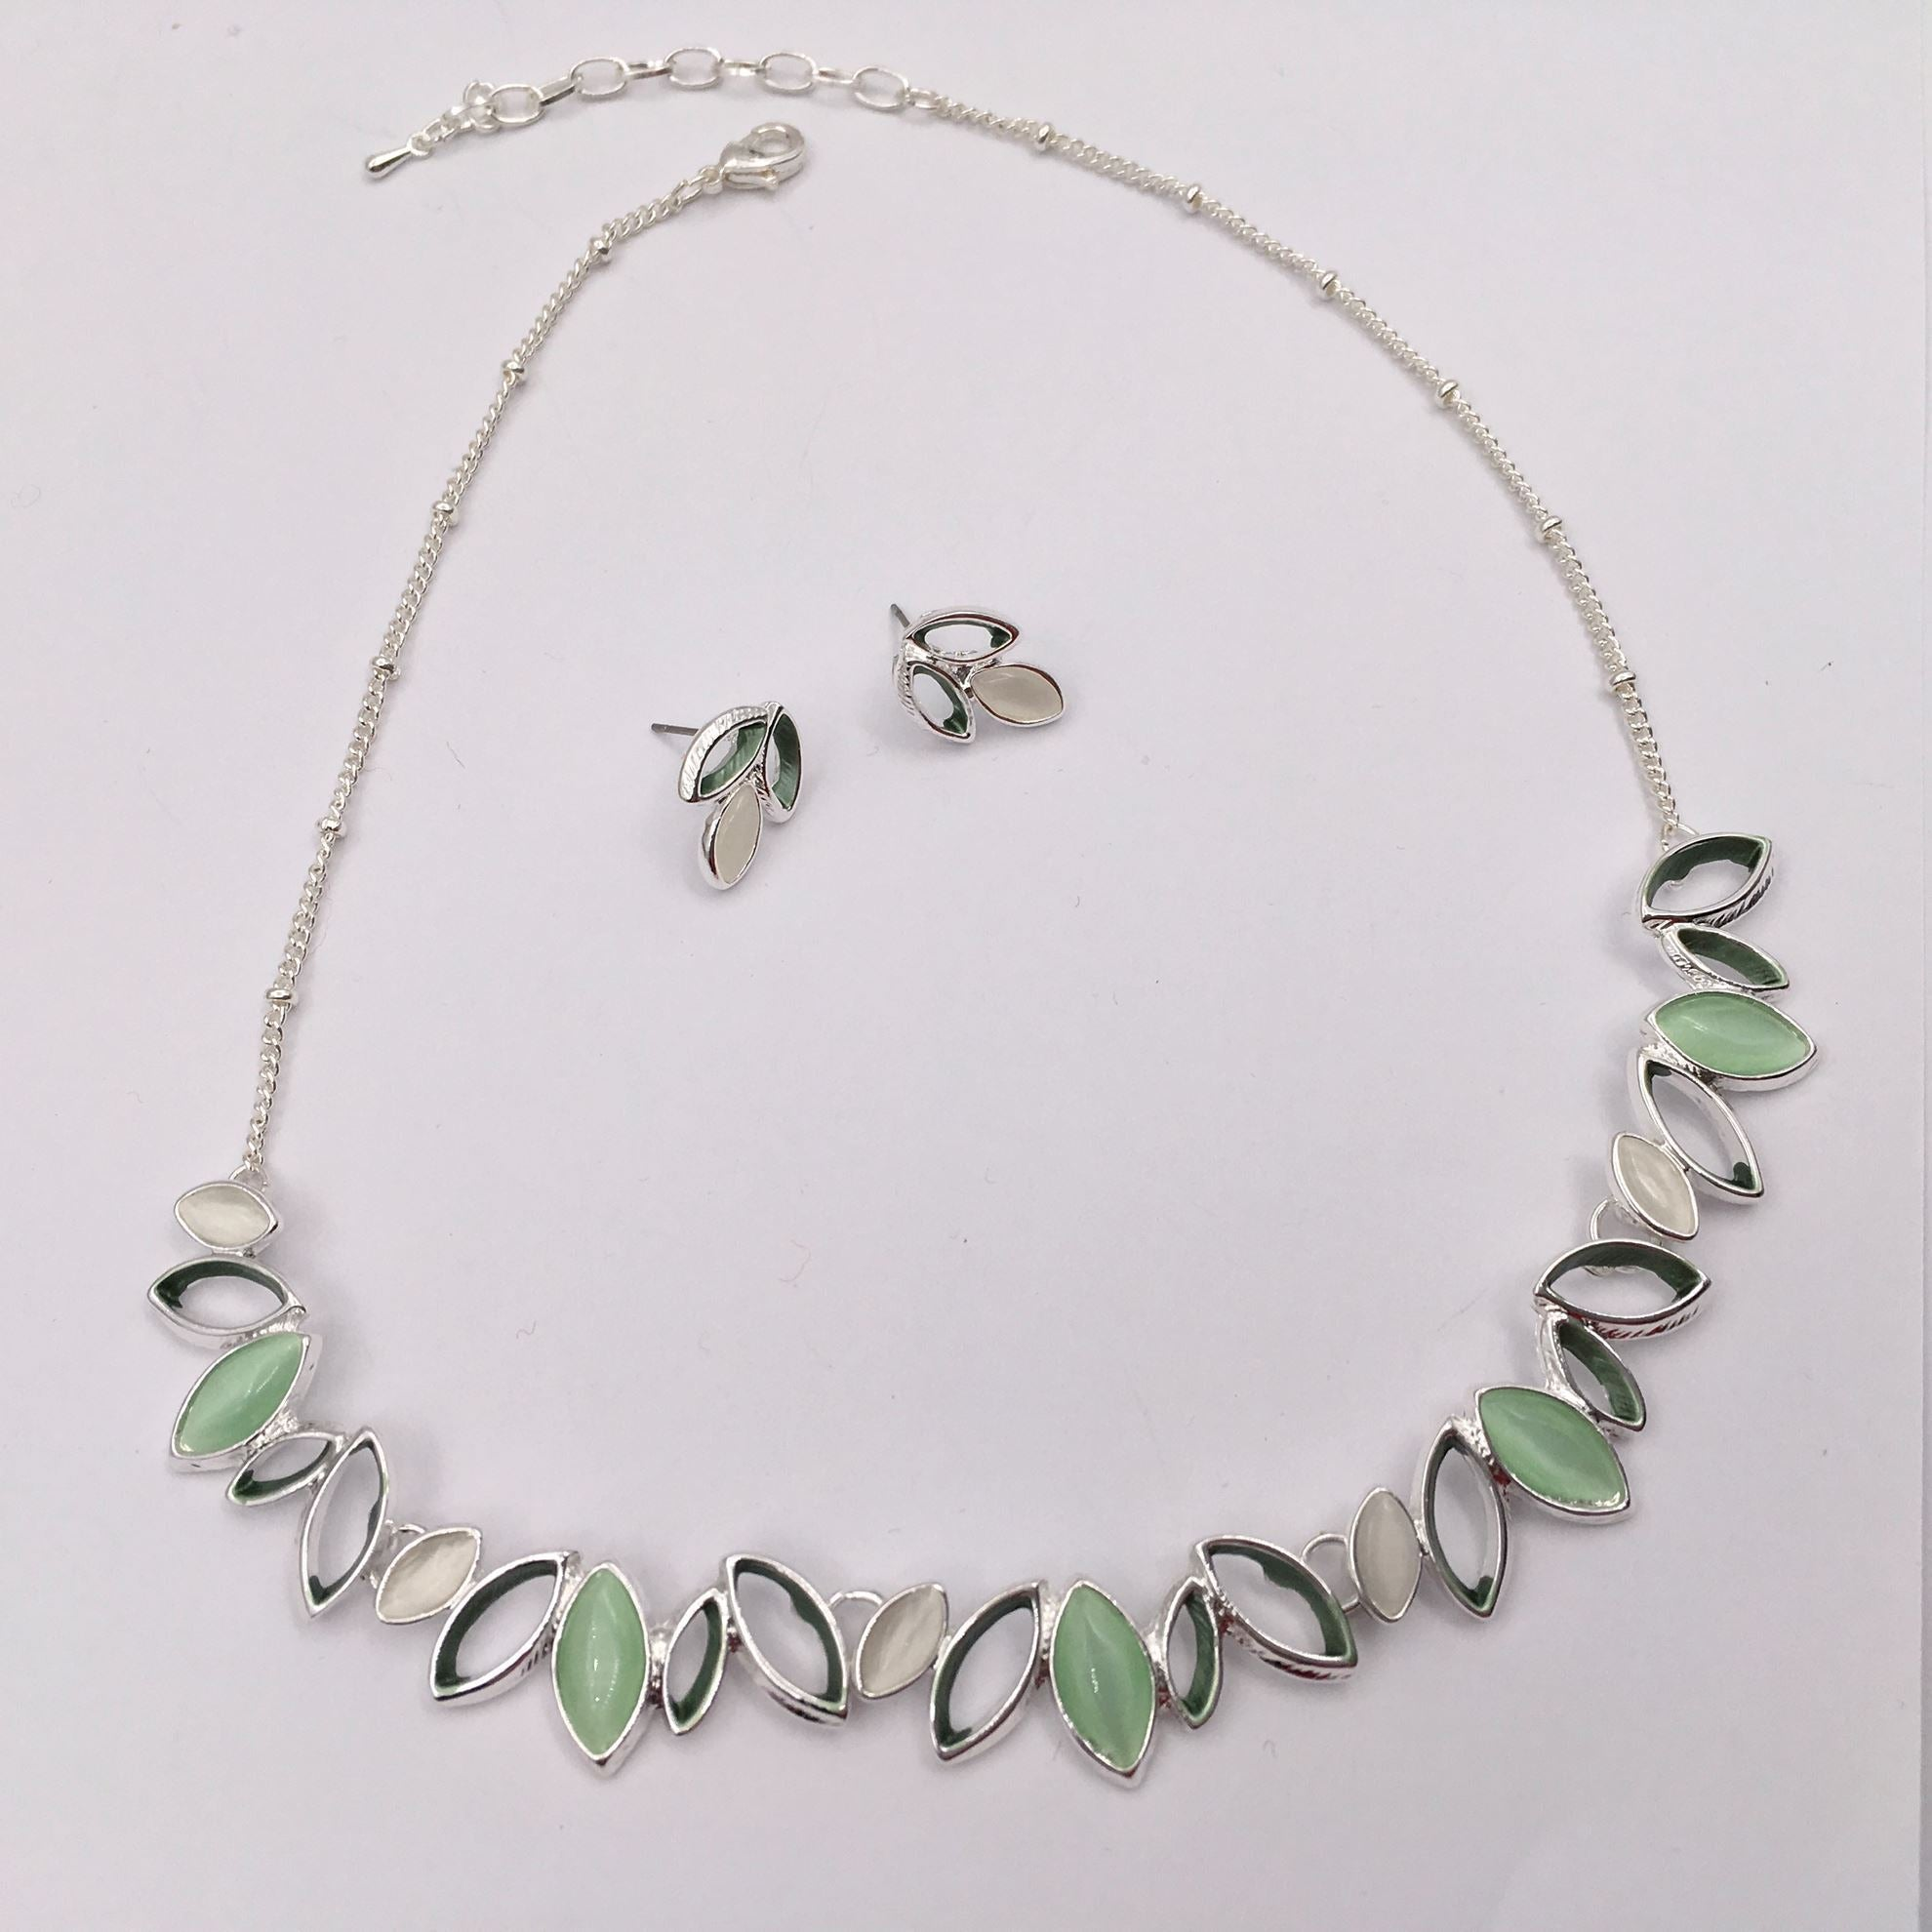 Ovals necklace